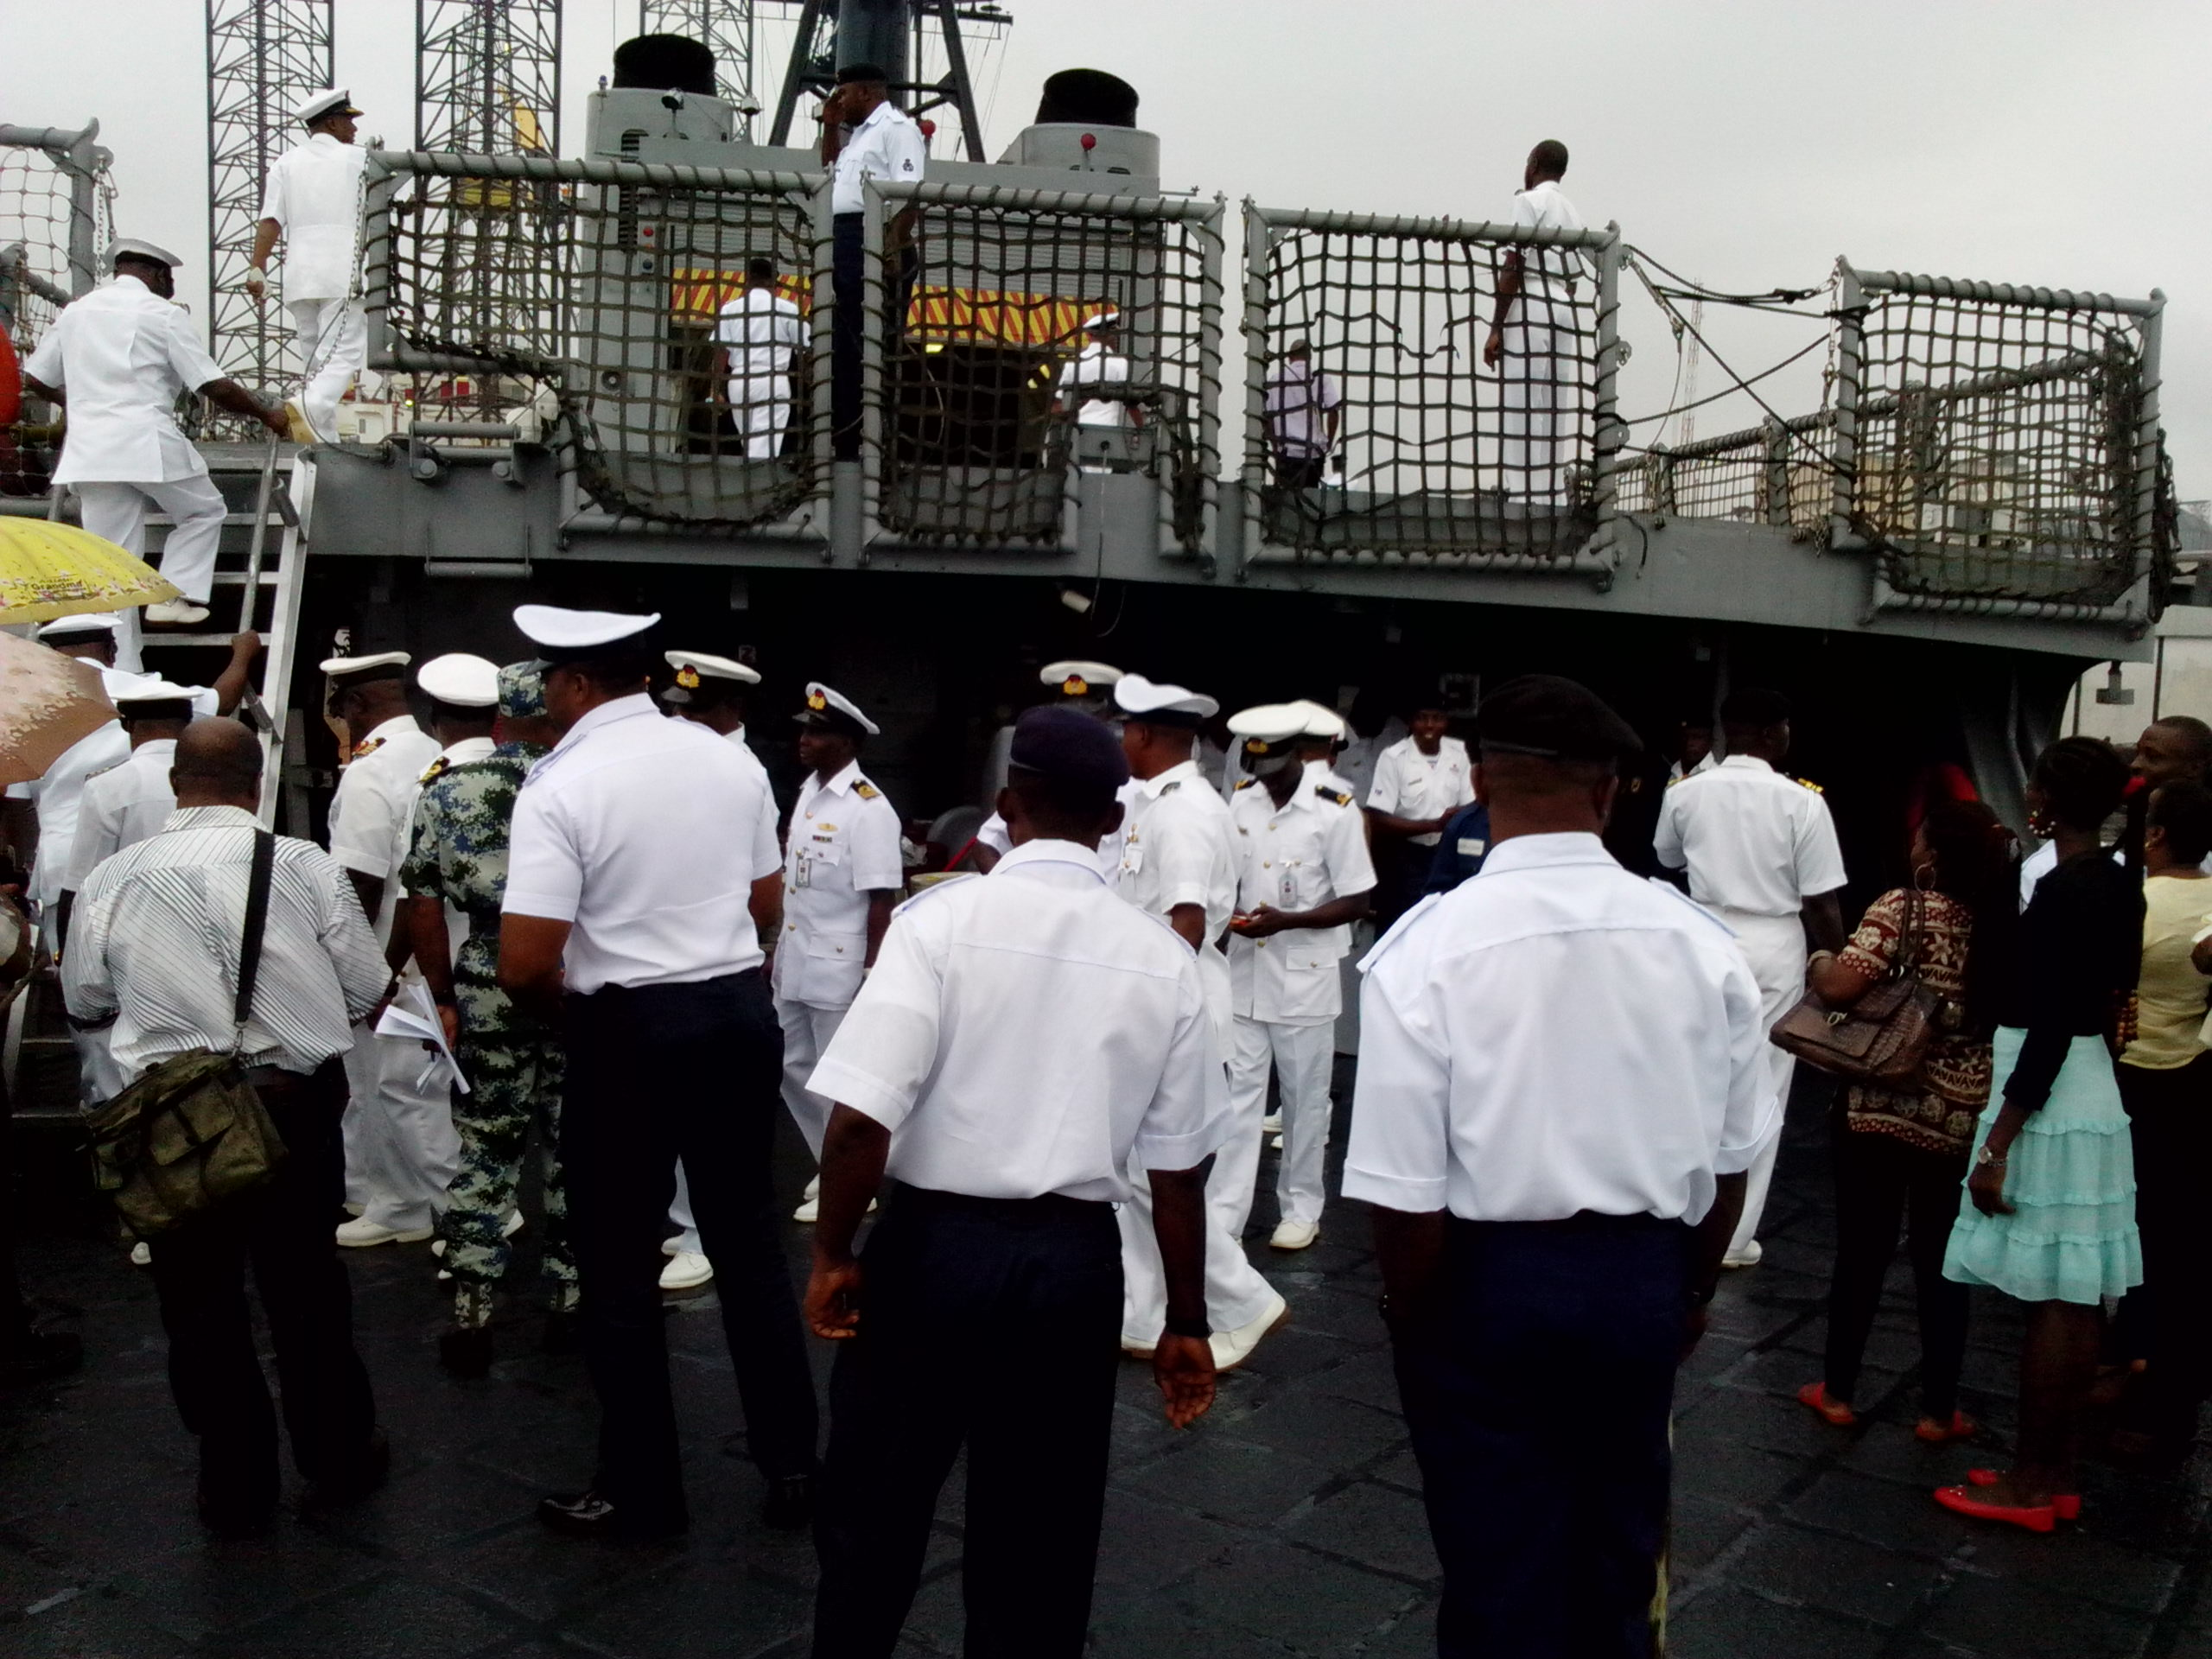 Officers and Ratings going on board NNS Thunder this morning in Calabar